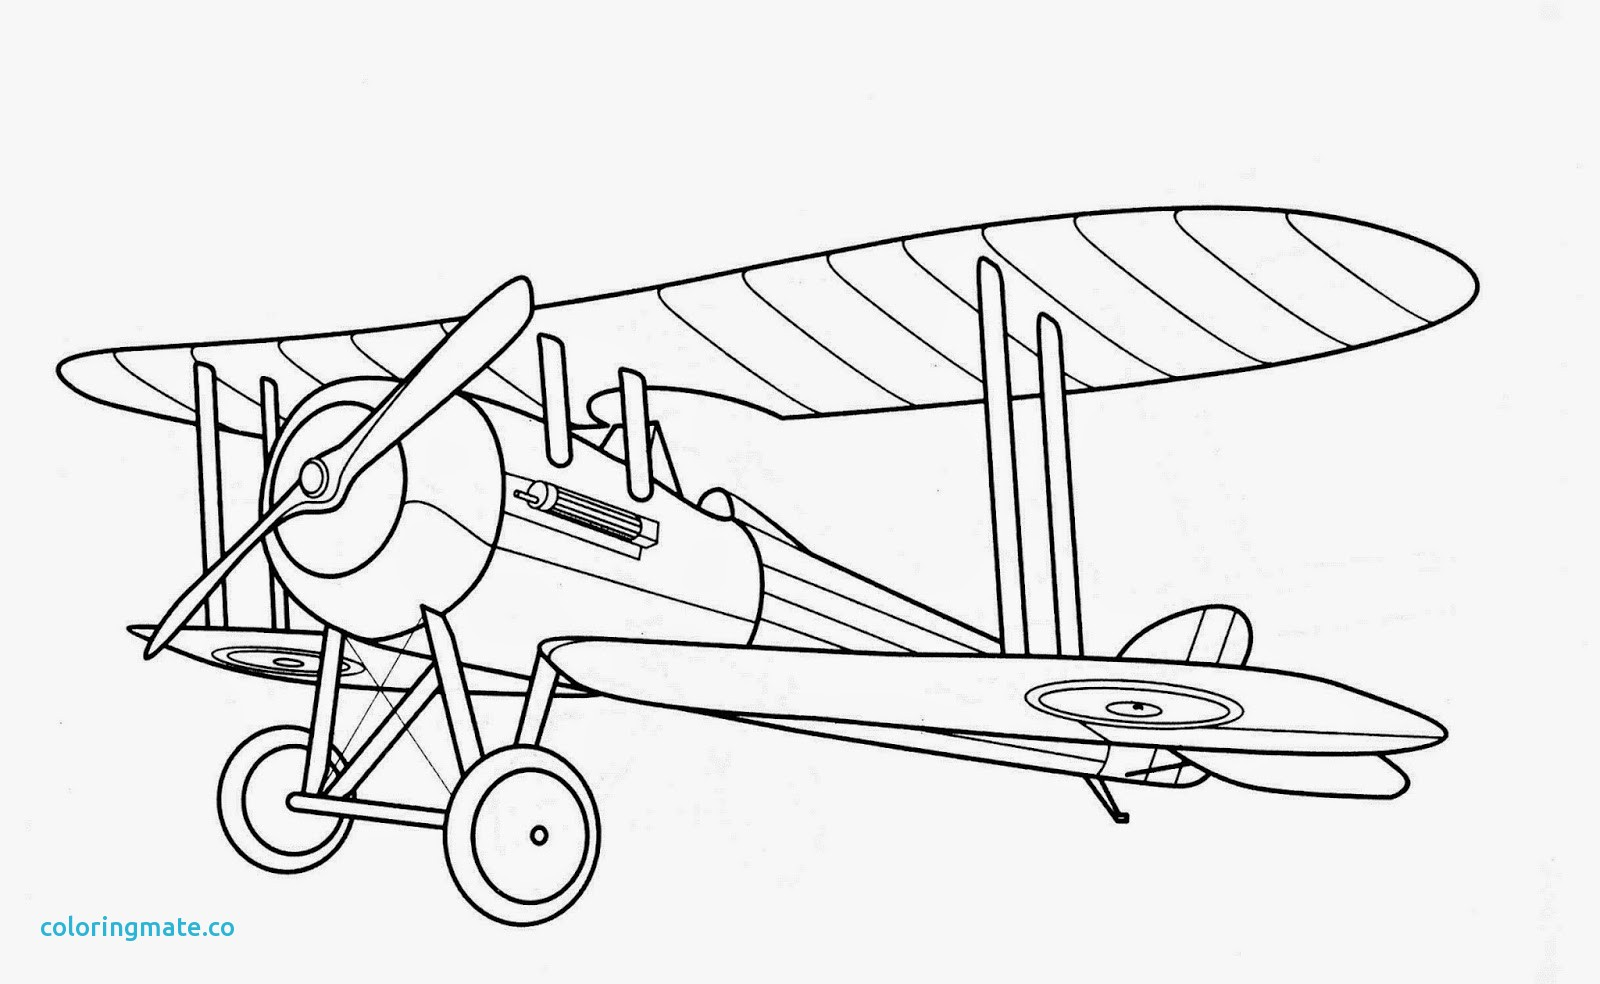 Planes Drawing At Getdrawings Com Free For Personal Use Planes